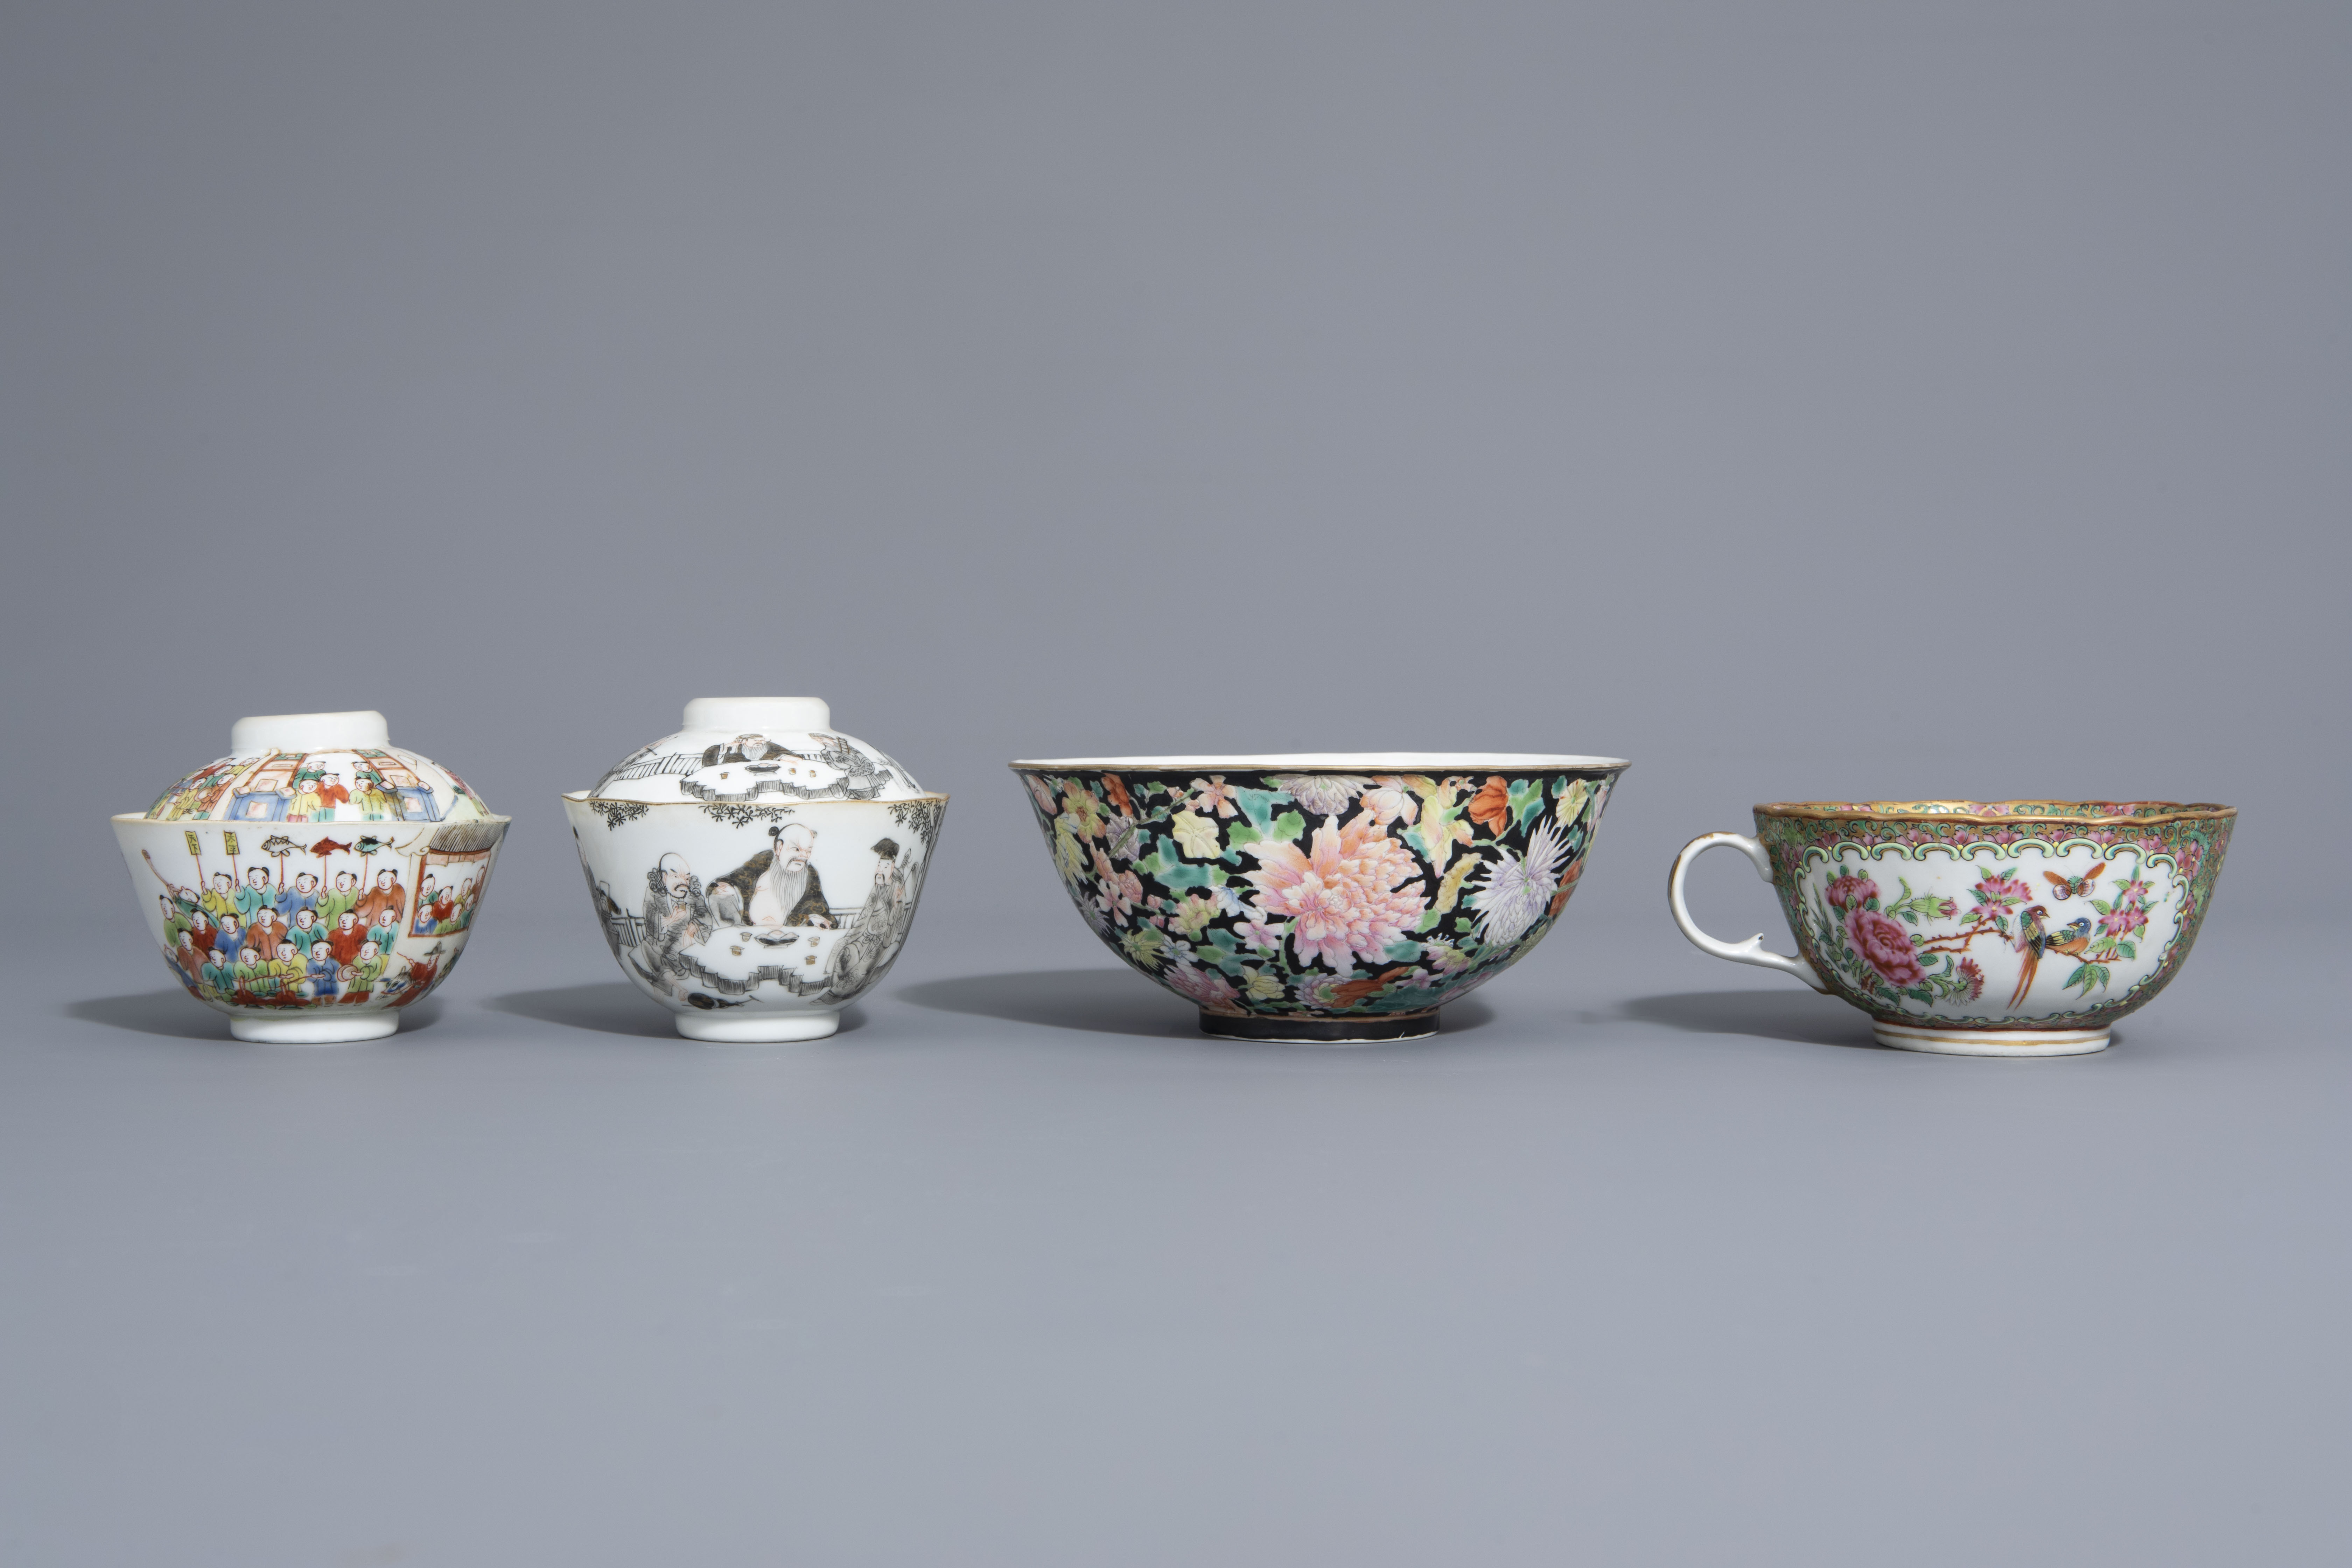 Three Chinese famille rose and grisaille bowls and a Canton bowl on stand, 19th/20th C. - Image 2 of 9